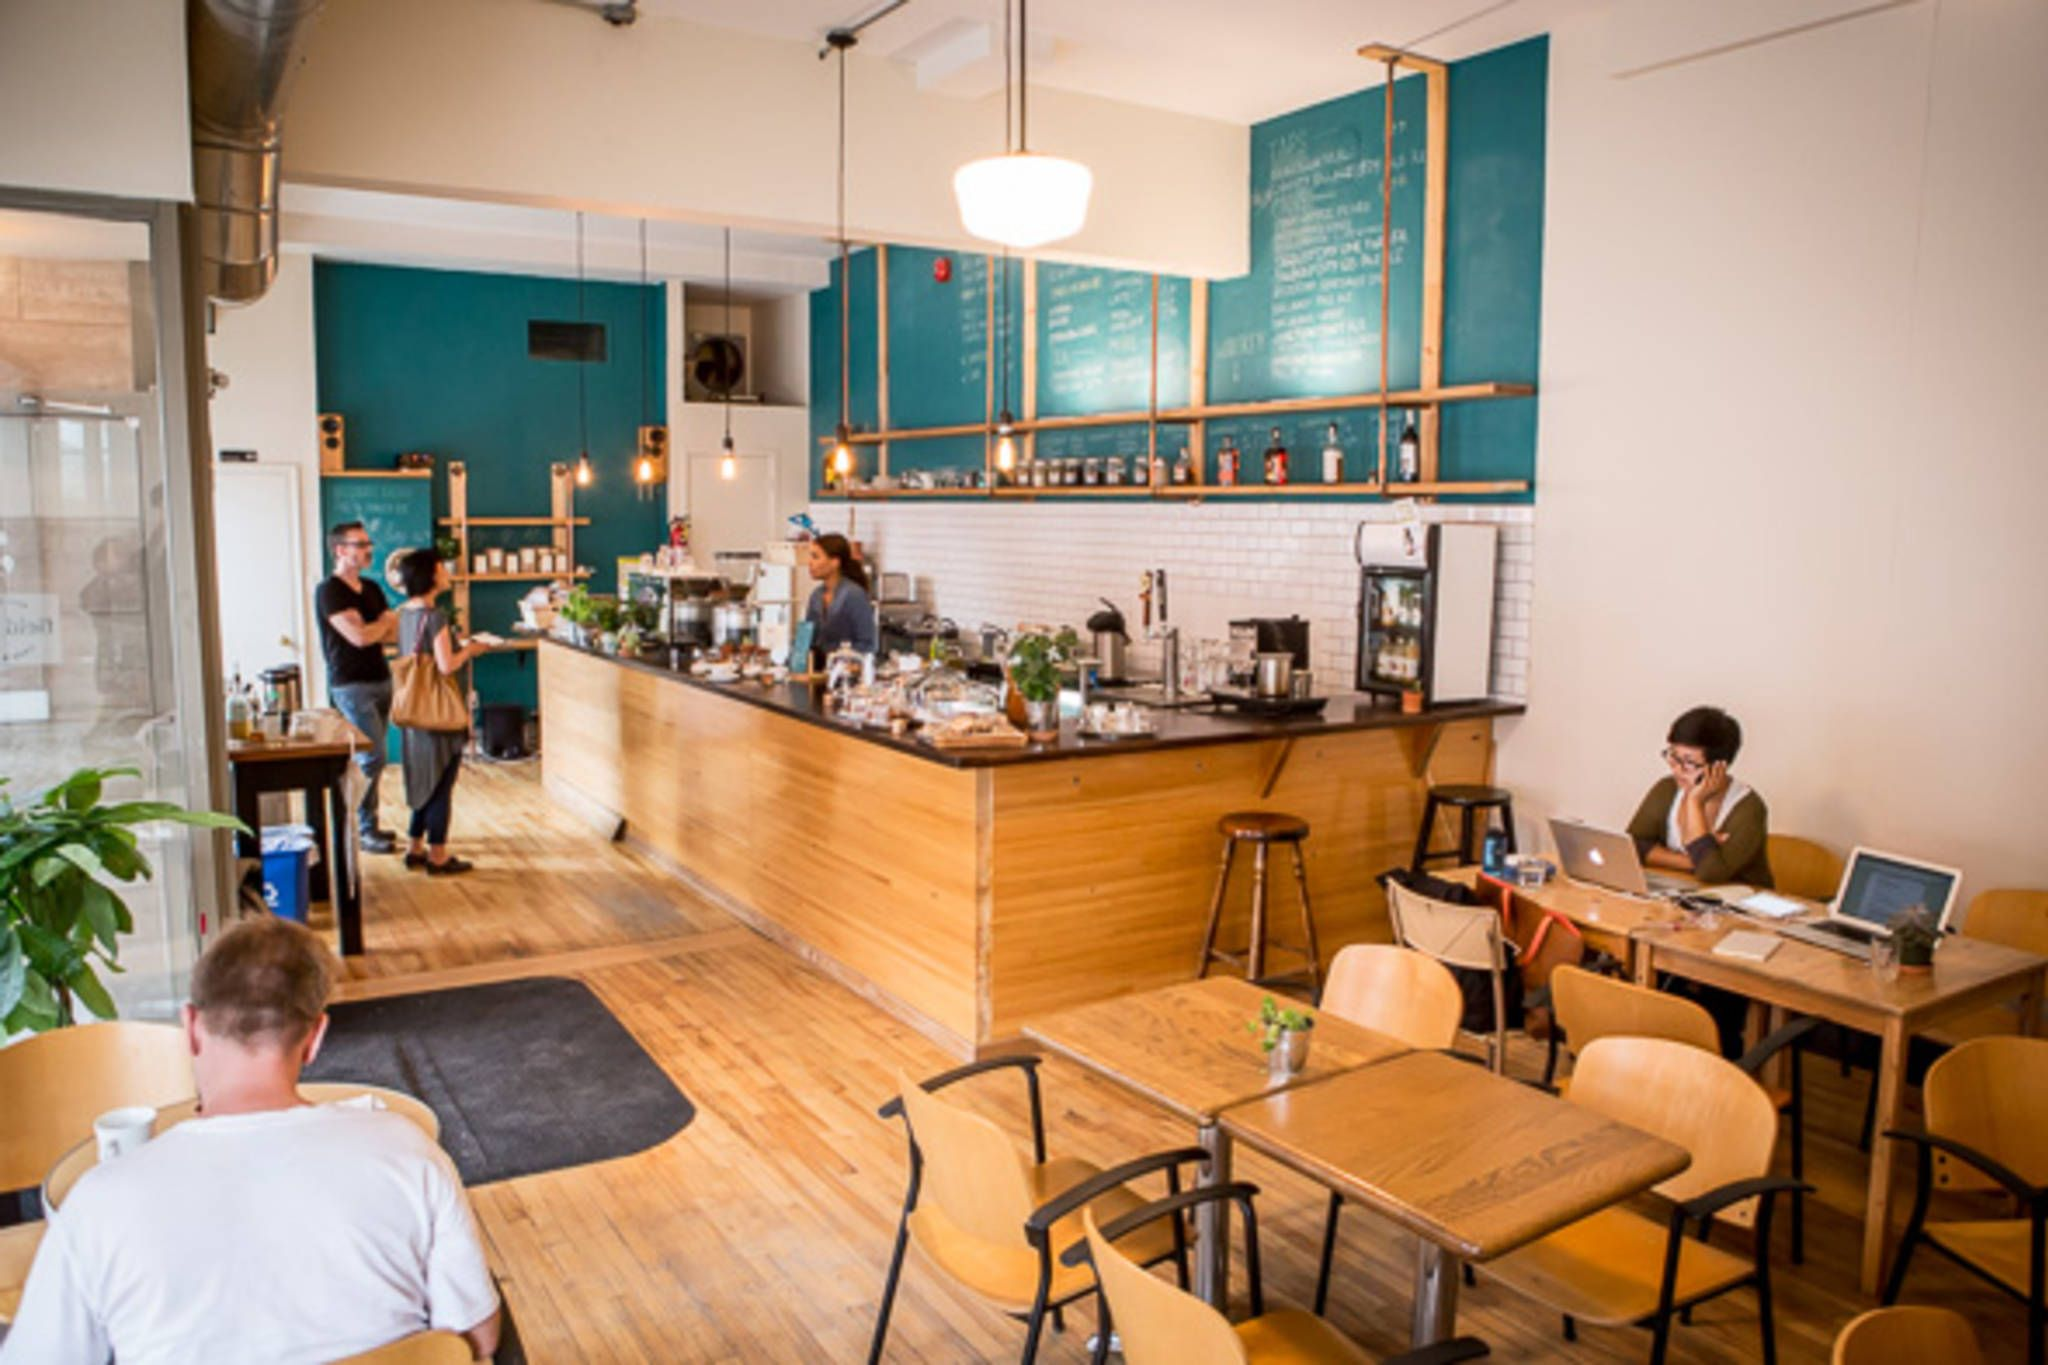 The Top 30 Cafes For Studying In Toronto By Neighbourhood Study Cafe Cafe Interior Brick Cafe